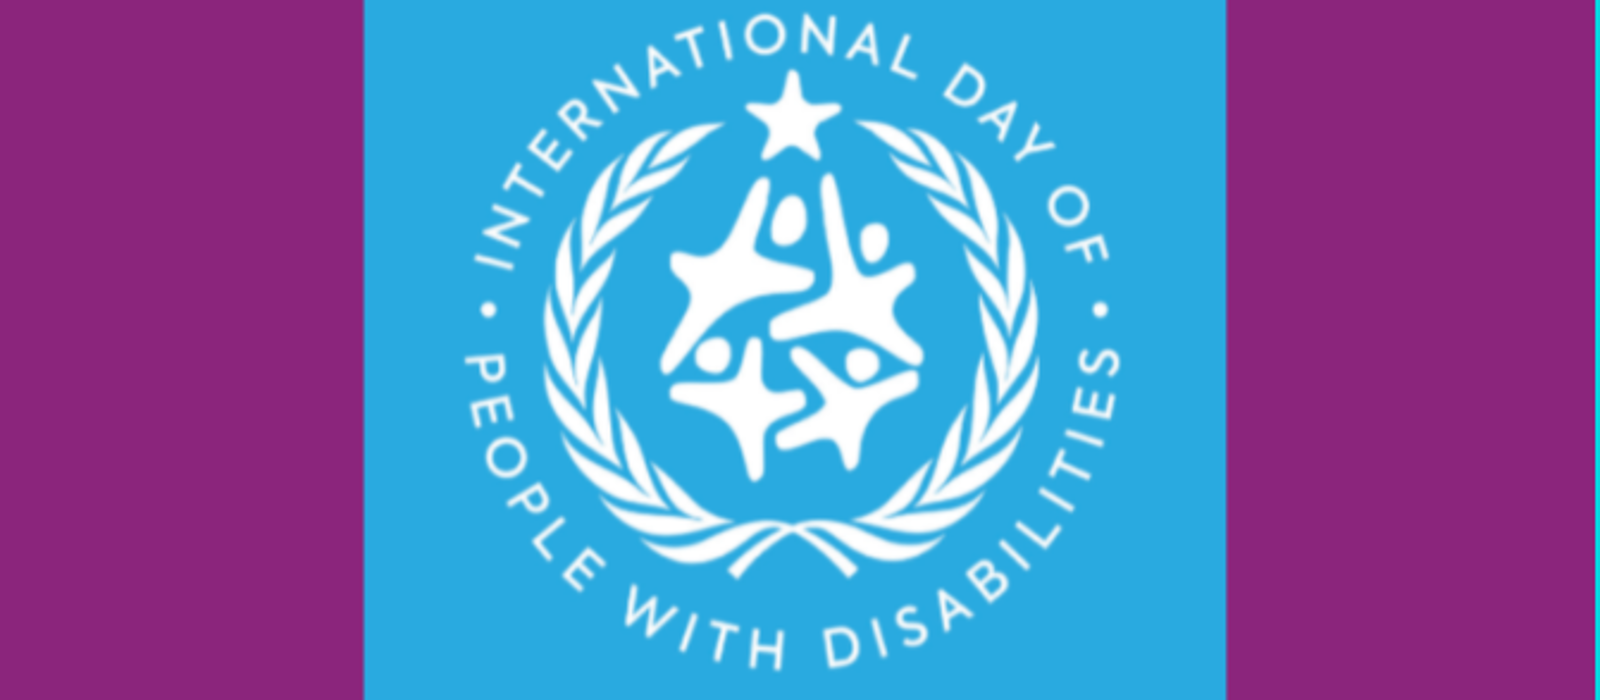 International Day of People with Disabilities